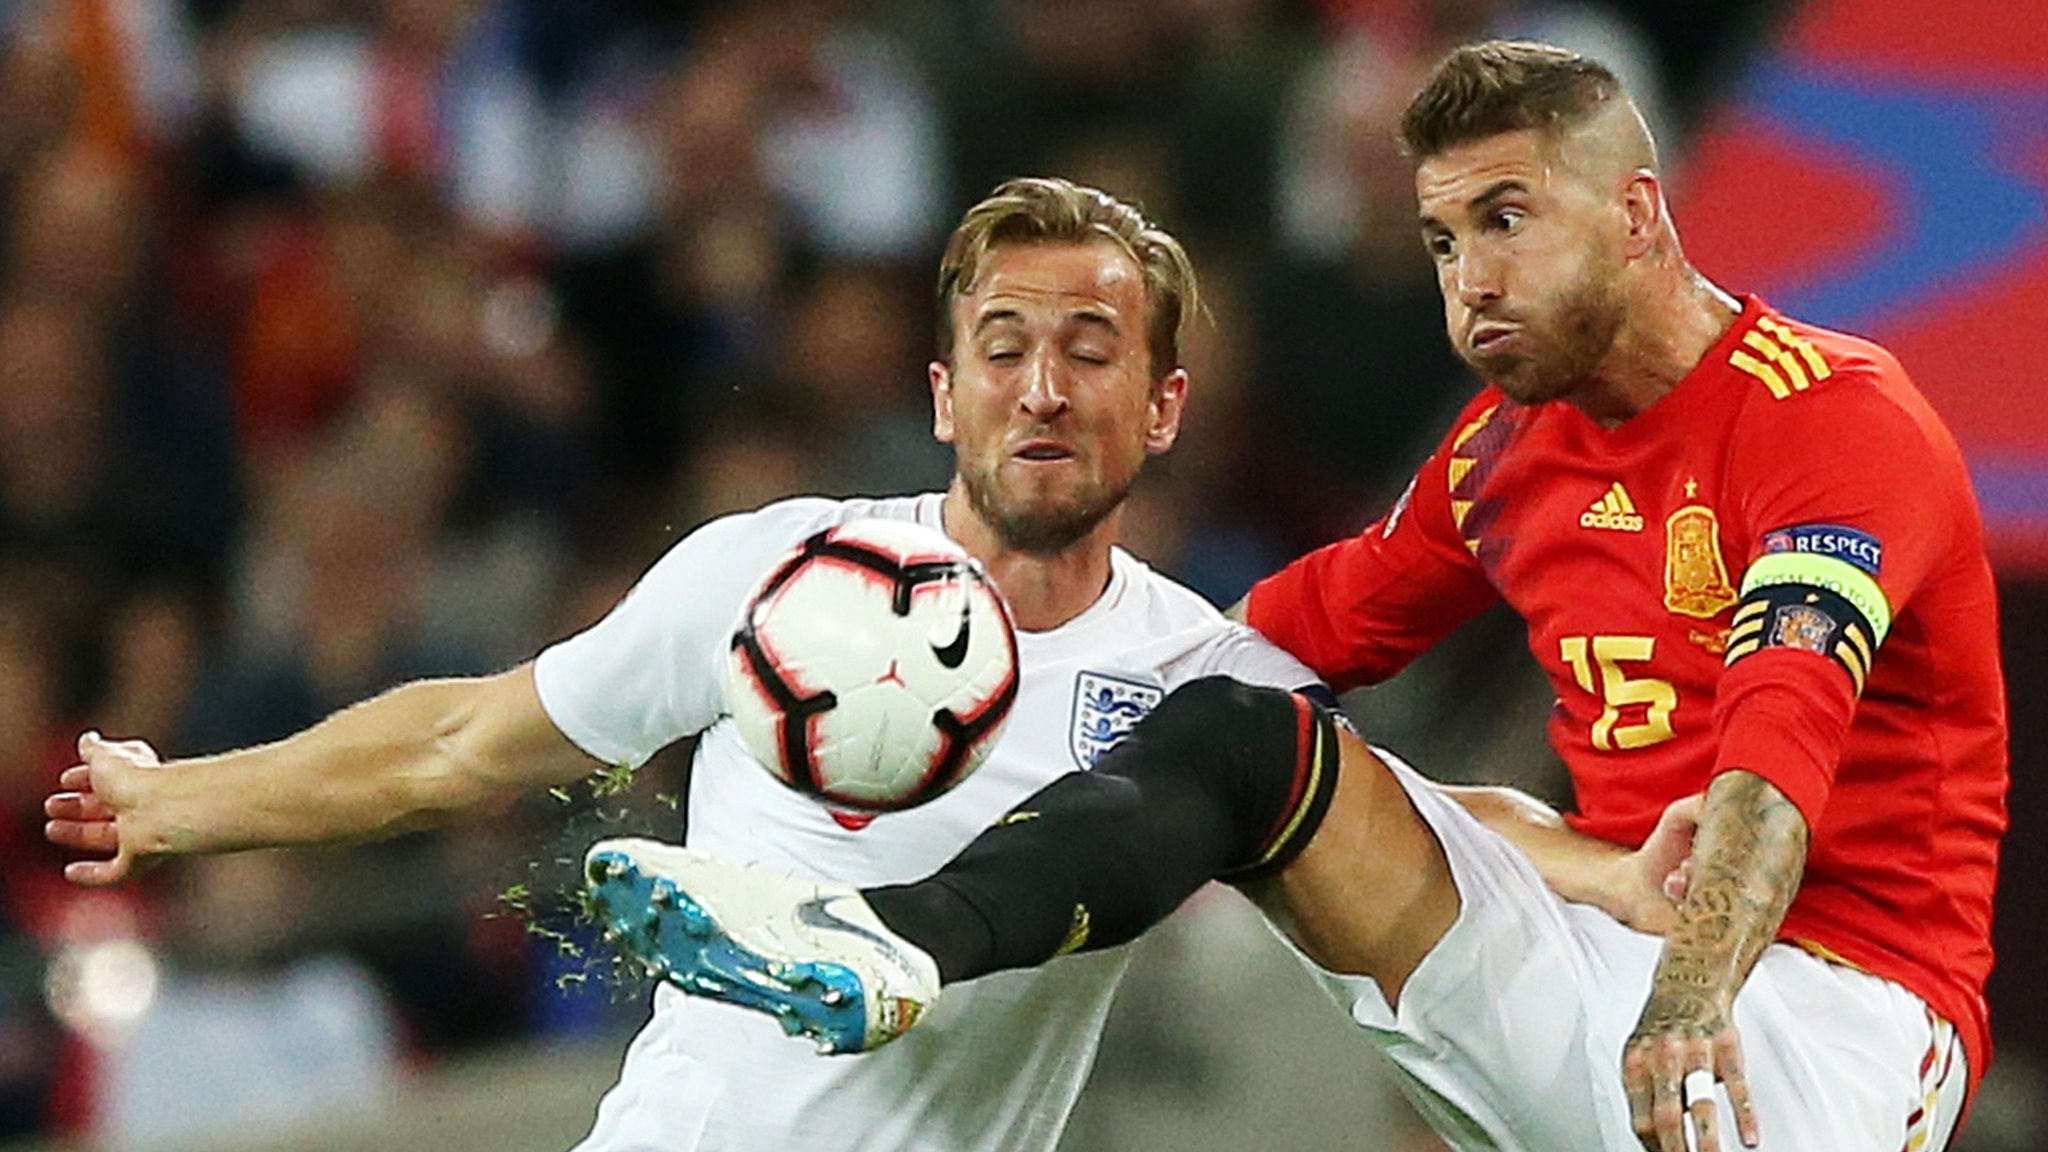 Kane would flourish in La Liga, says Spain captain Ramos